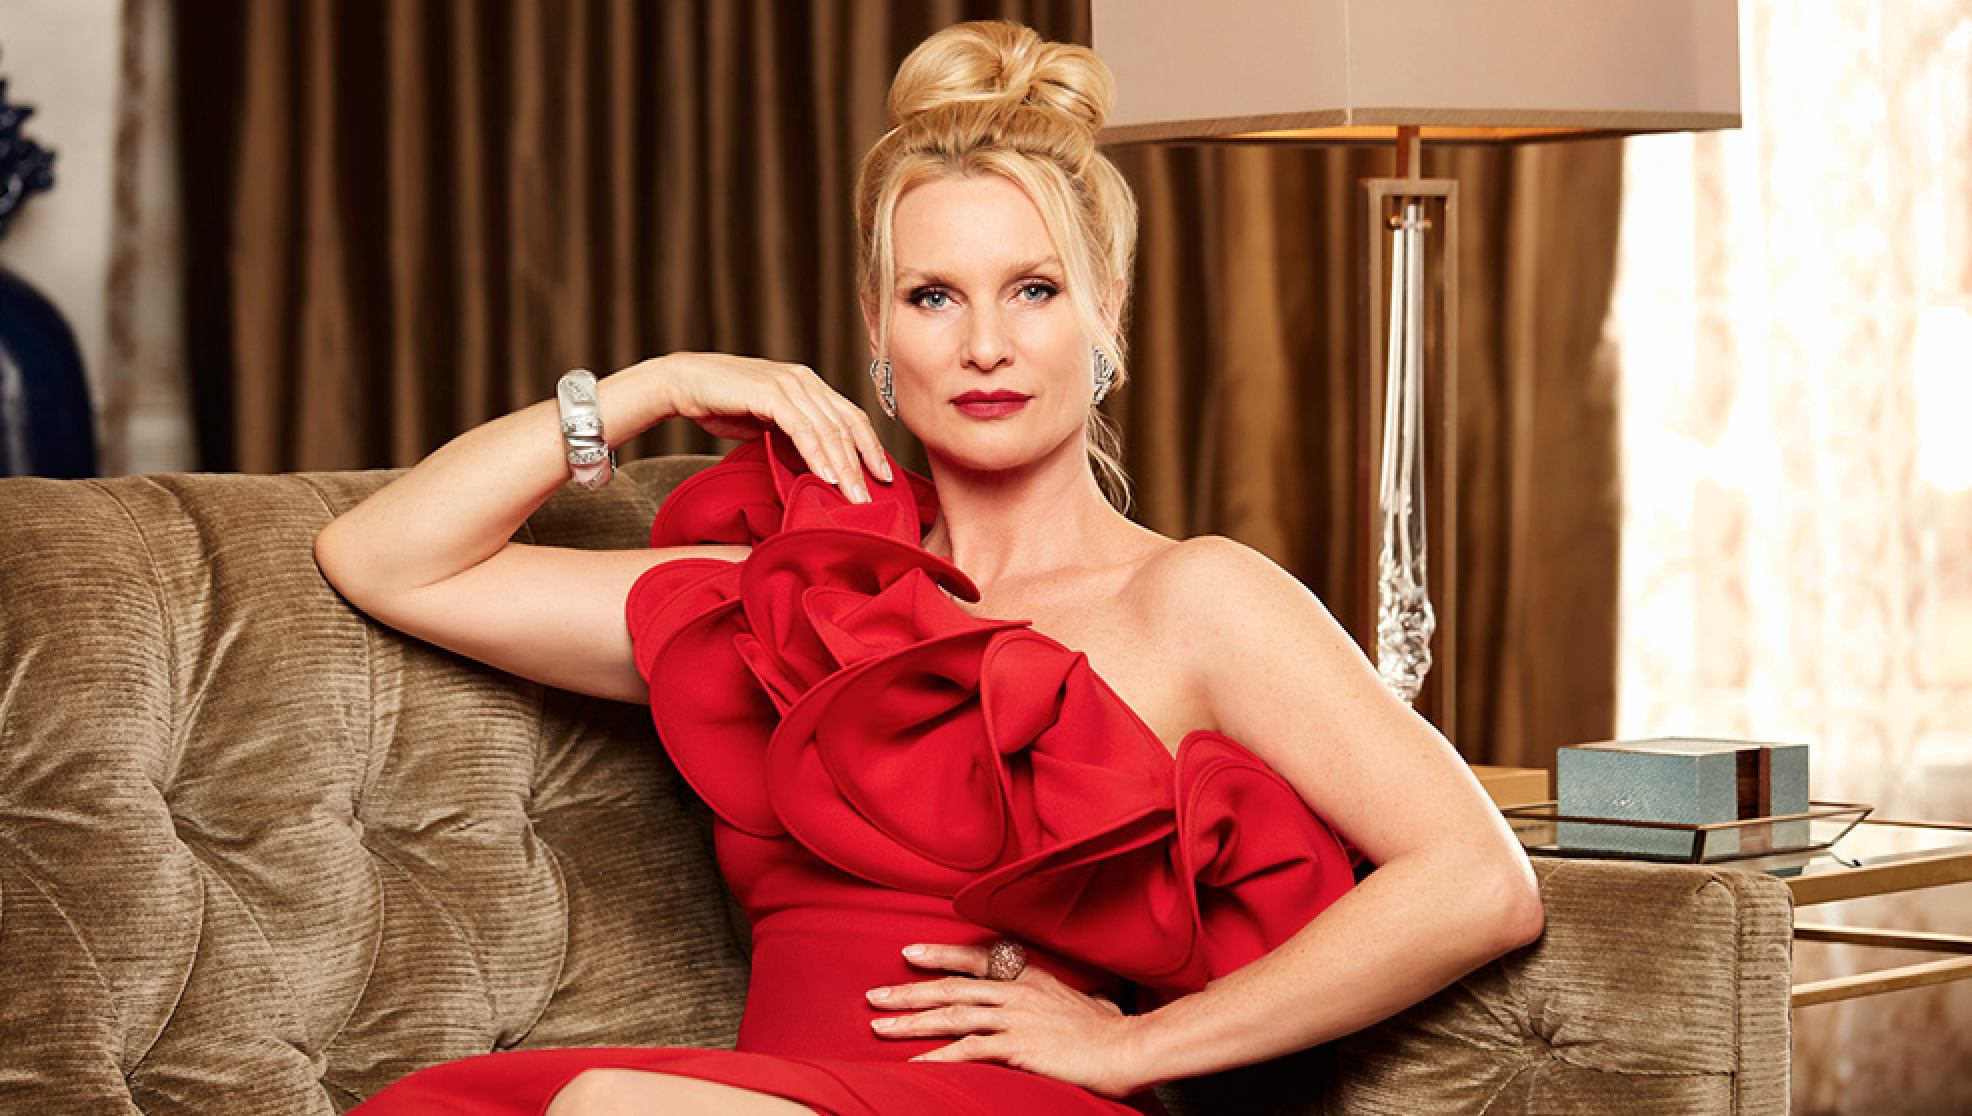 'Dynasty': Nicollette Sheridan To Play Alexis Carrington On The CW Reboot